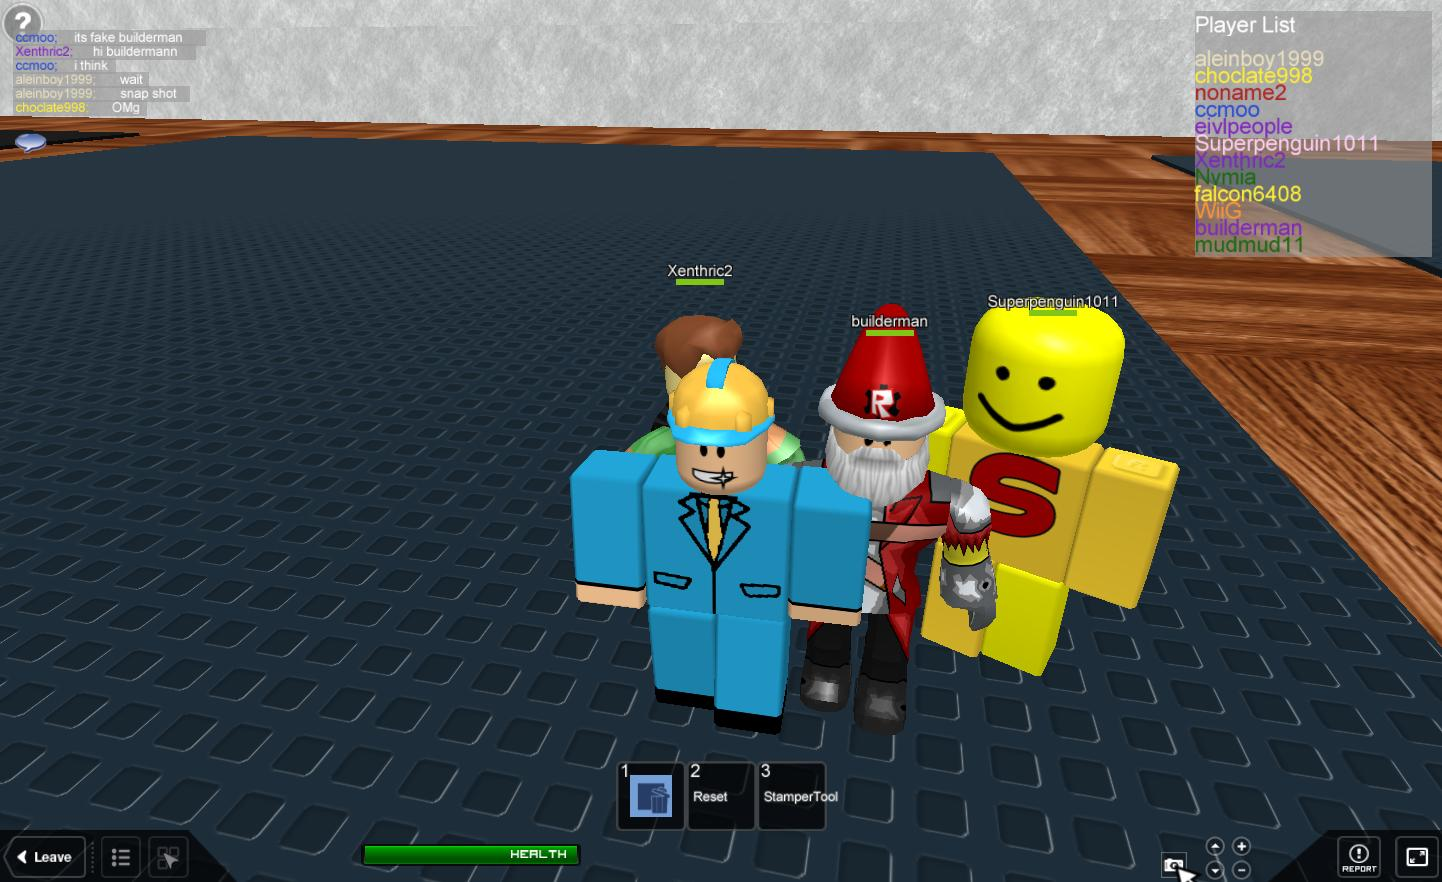 how to look at favorites on roblox